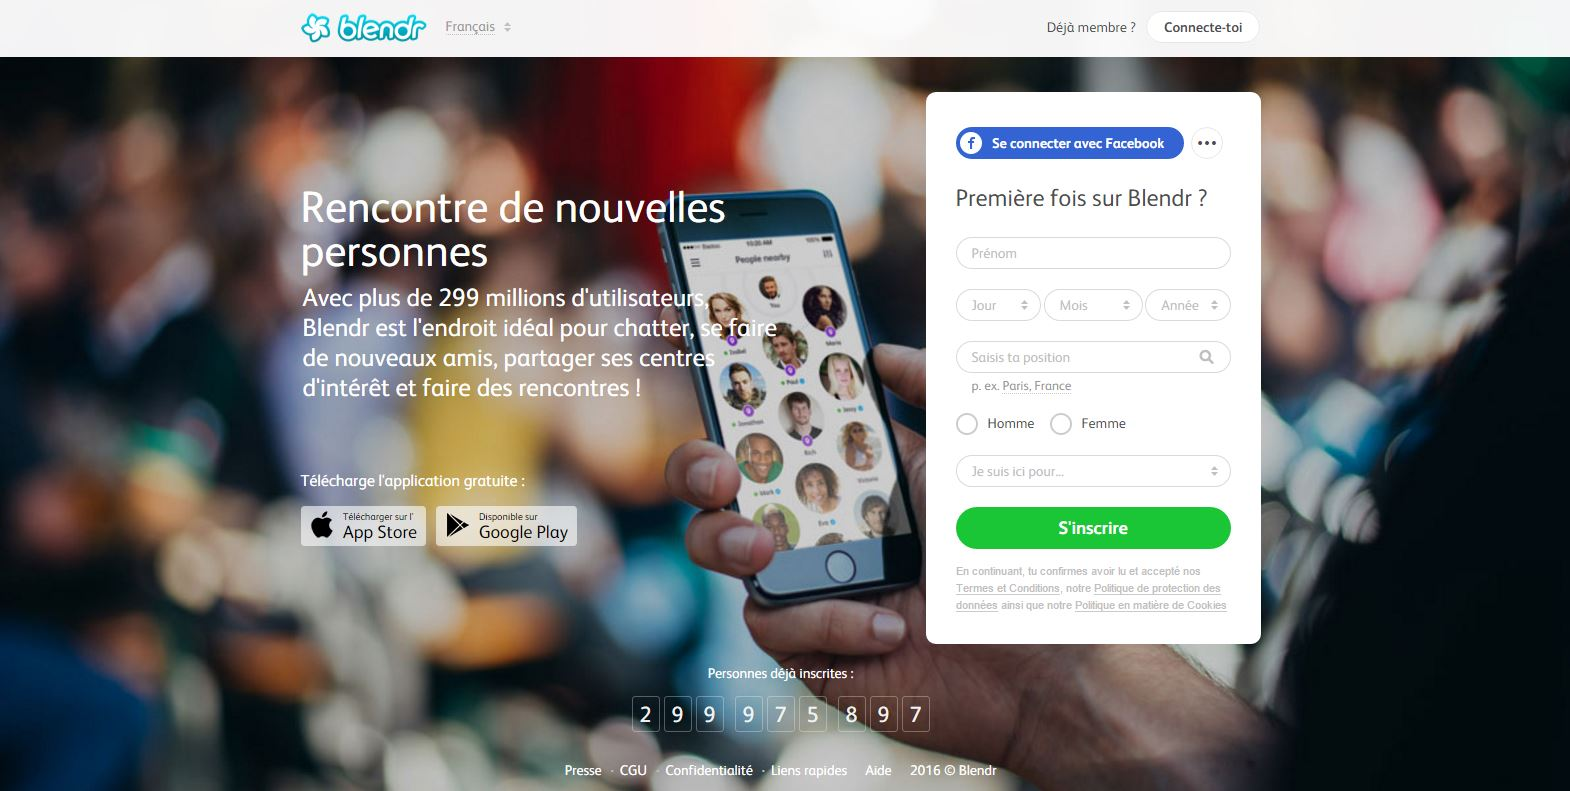 Site de rencontre blendr